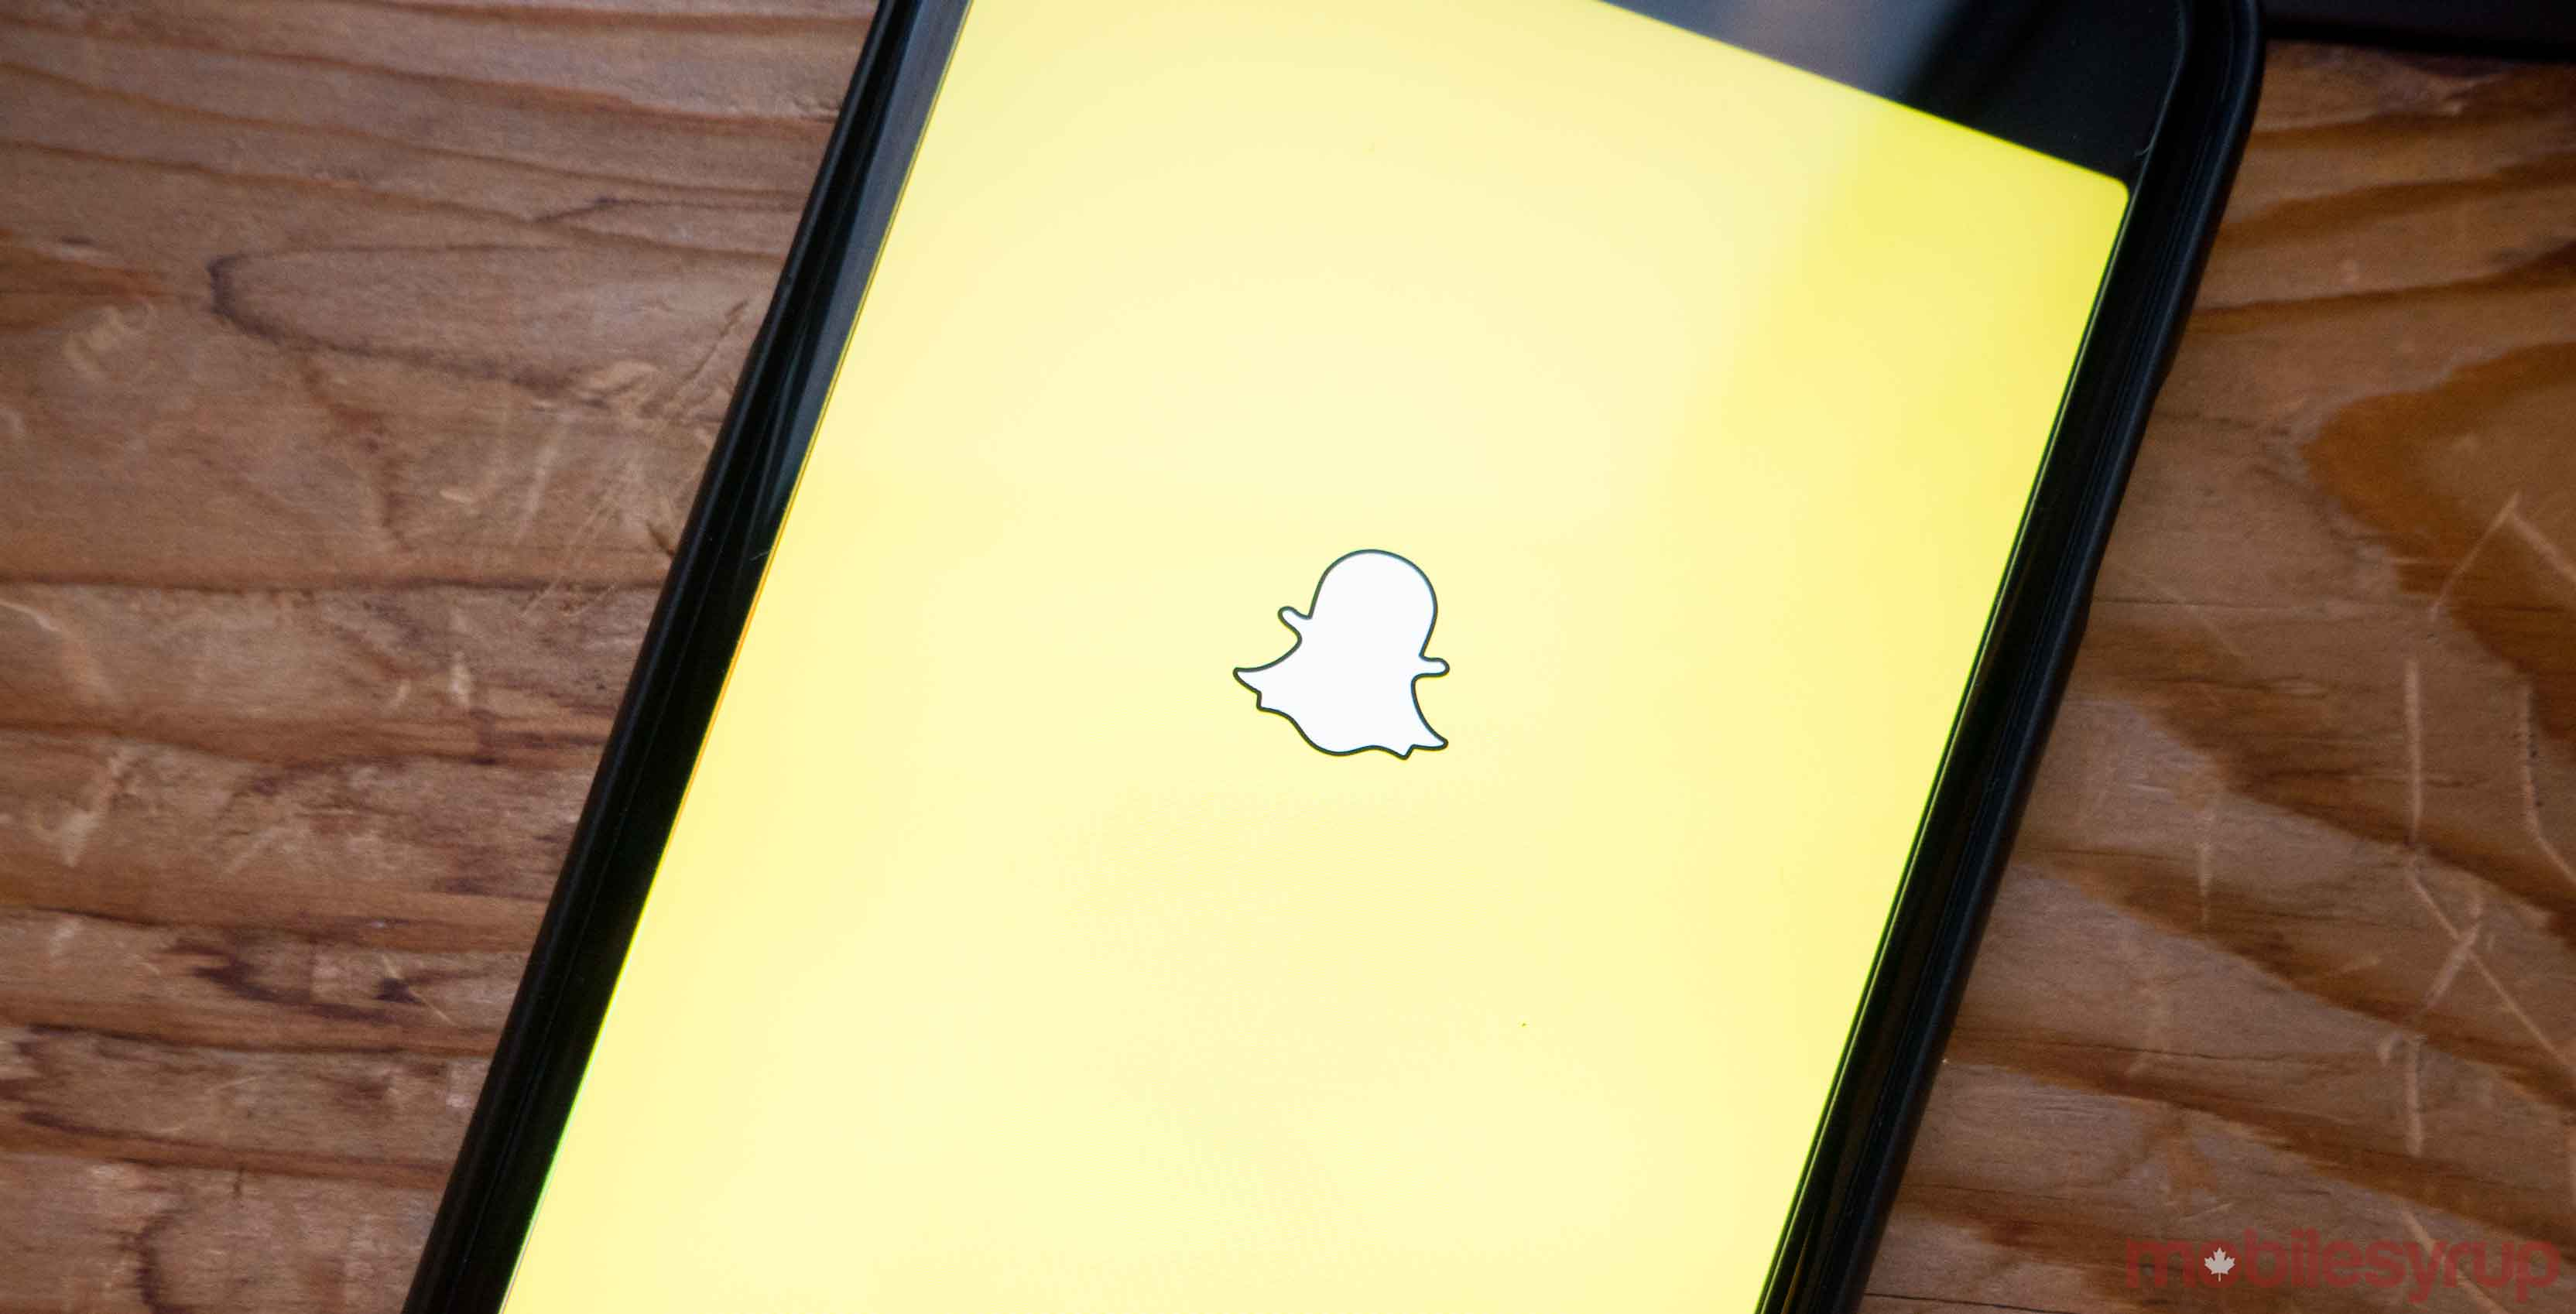 Snapchat logo on iPhone